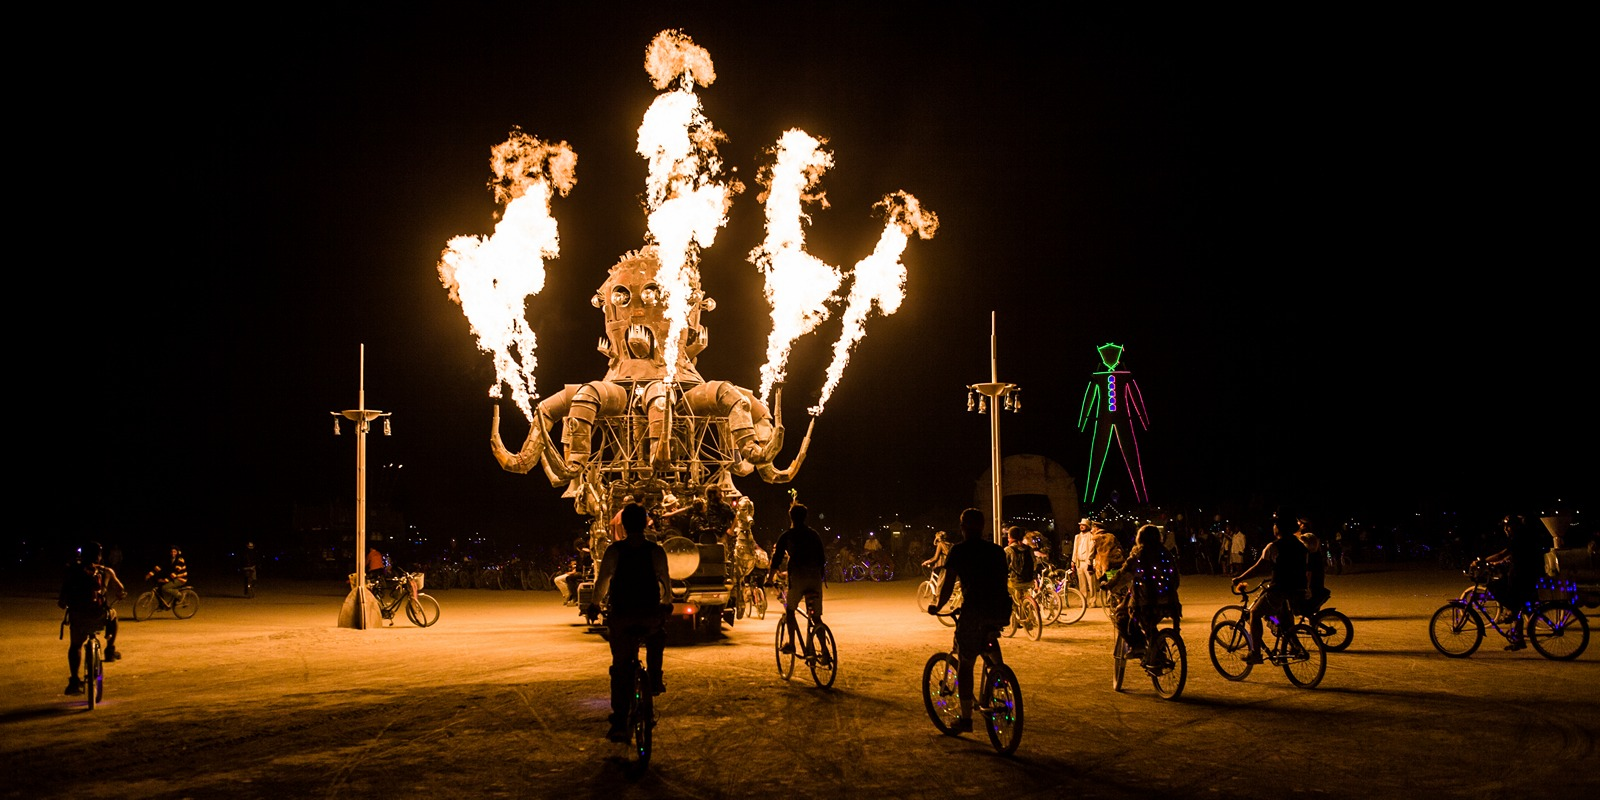 Burning Man - El pulpo mecanico